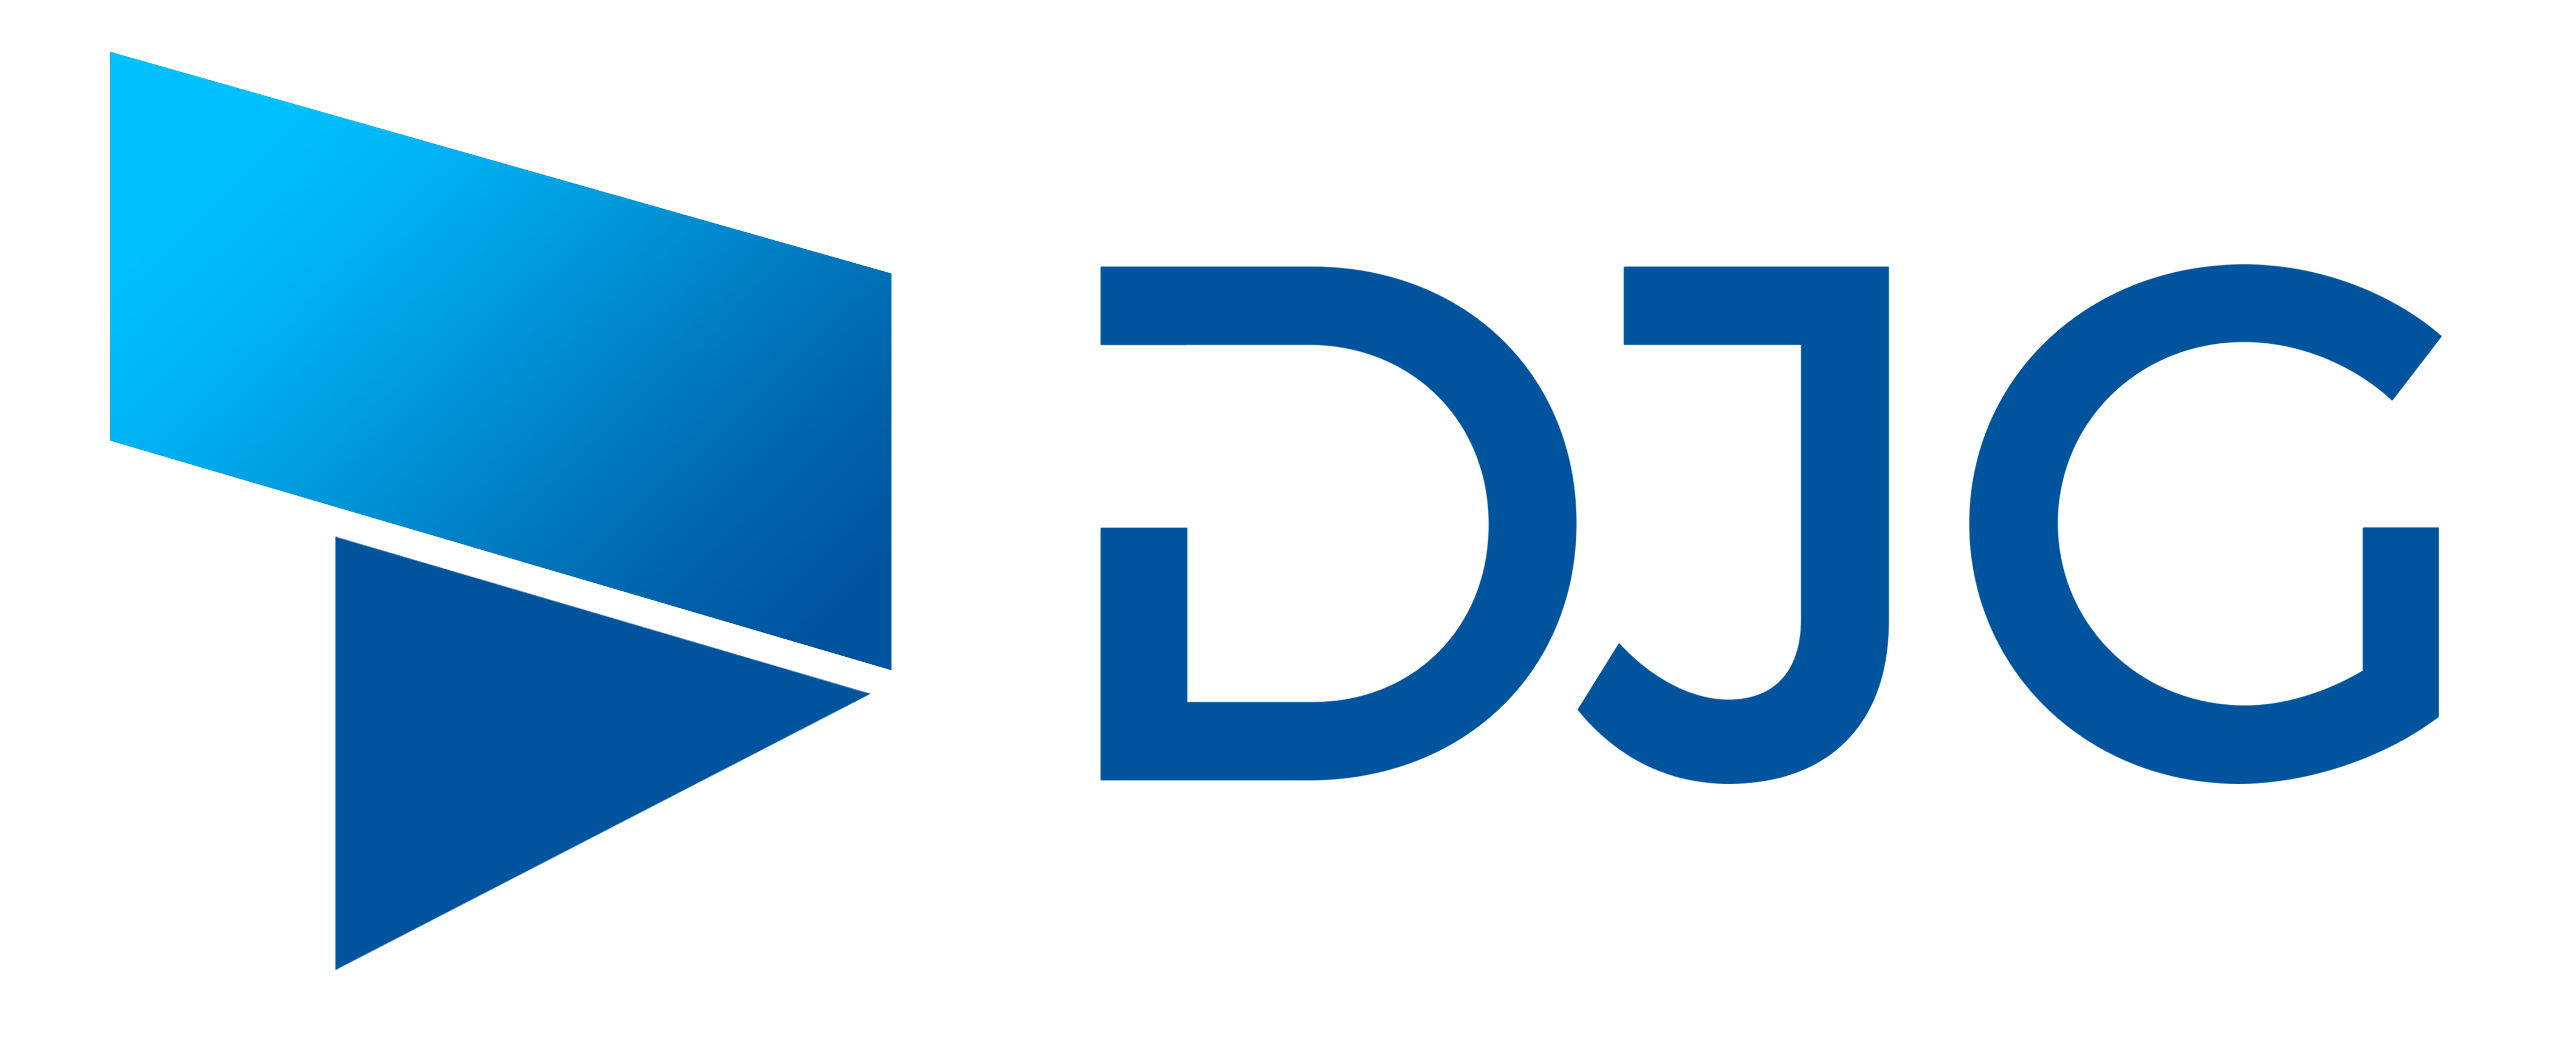 DJG partners with GetStarted to create voice-activated content experiences for marketing, HR and event leaders